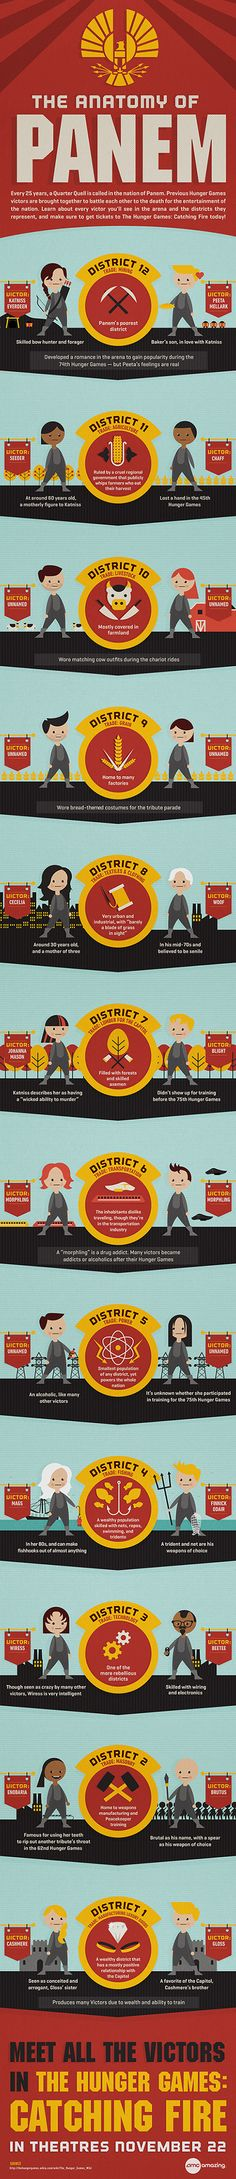 Catching Fire Infographic: The Anatomy of Panem #CatchingFire